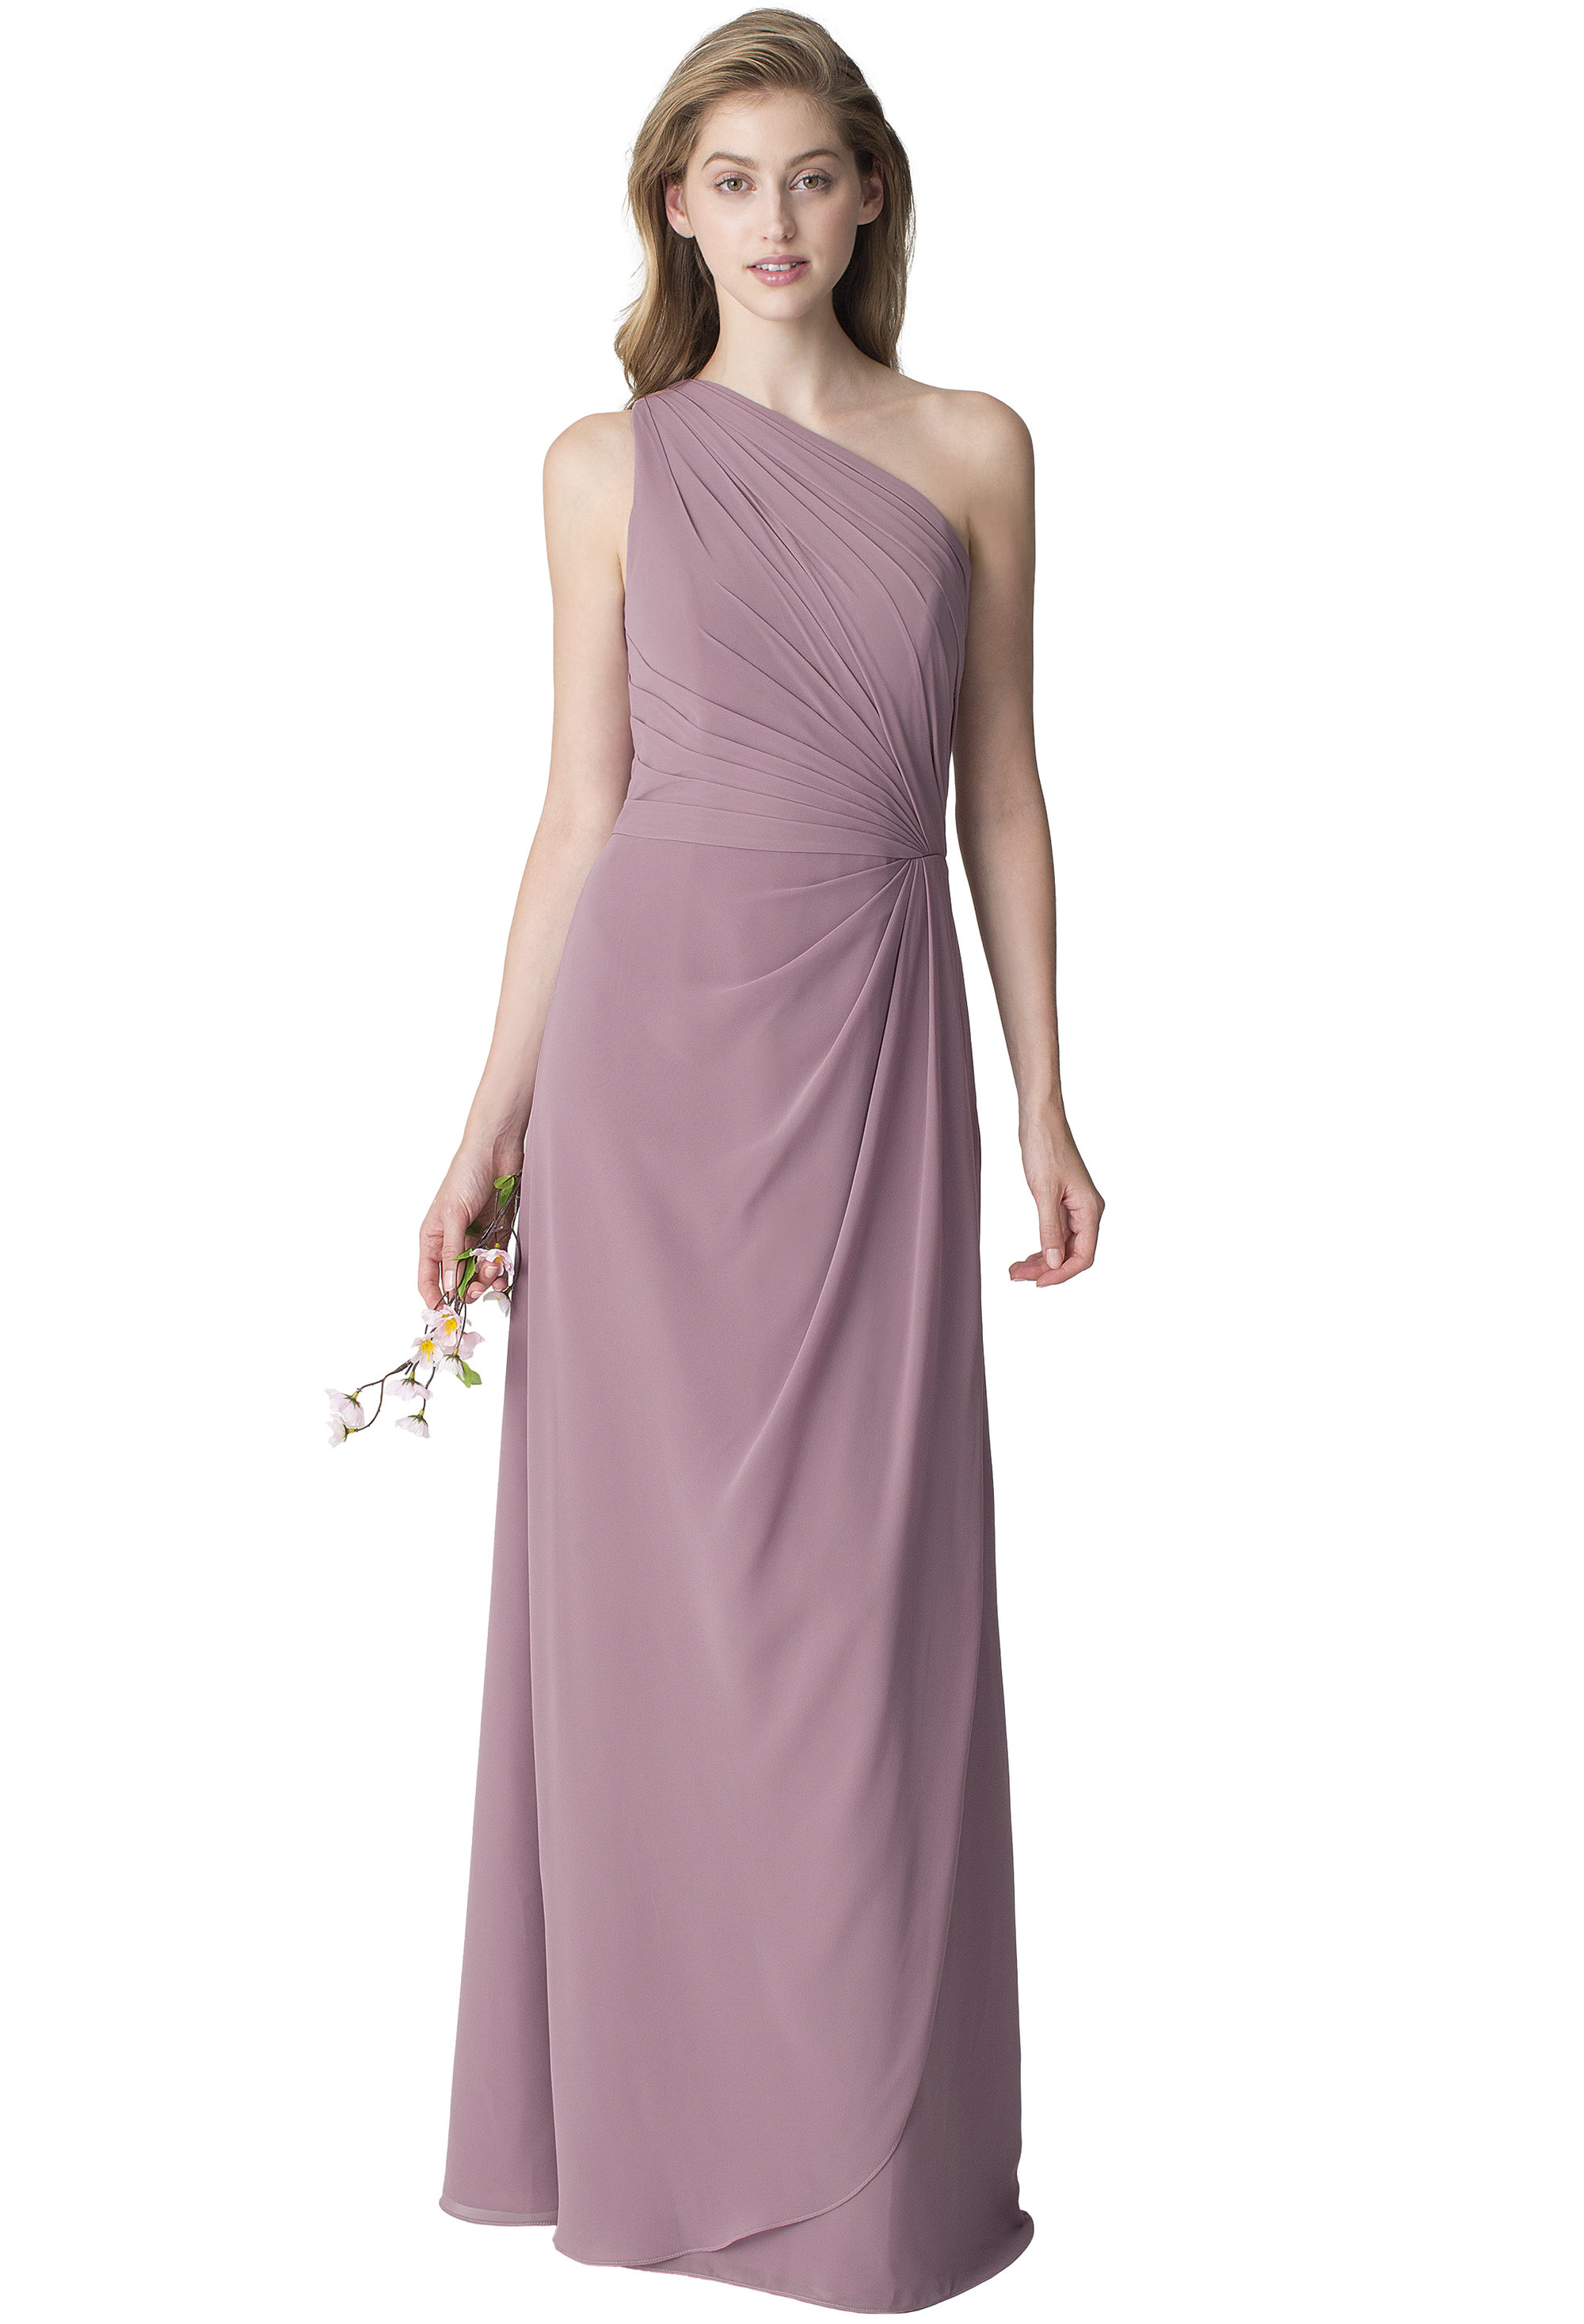 Bill Levkoff WISTERIA Chiffon One Shoulder A-line gown, $210.00 Front